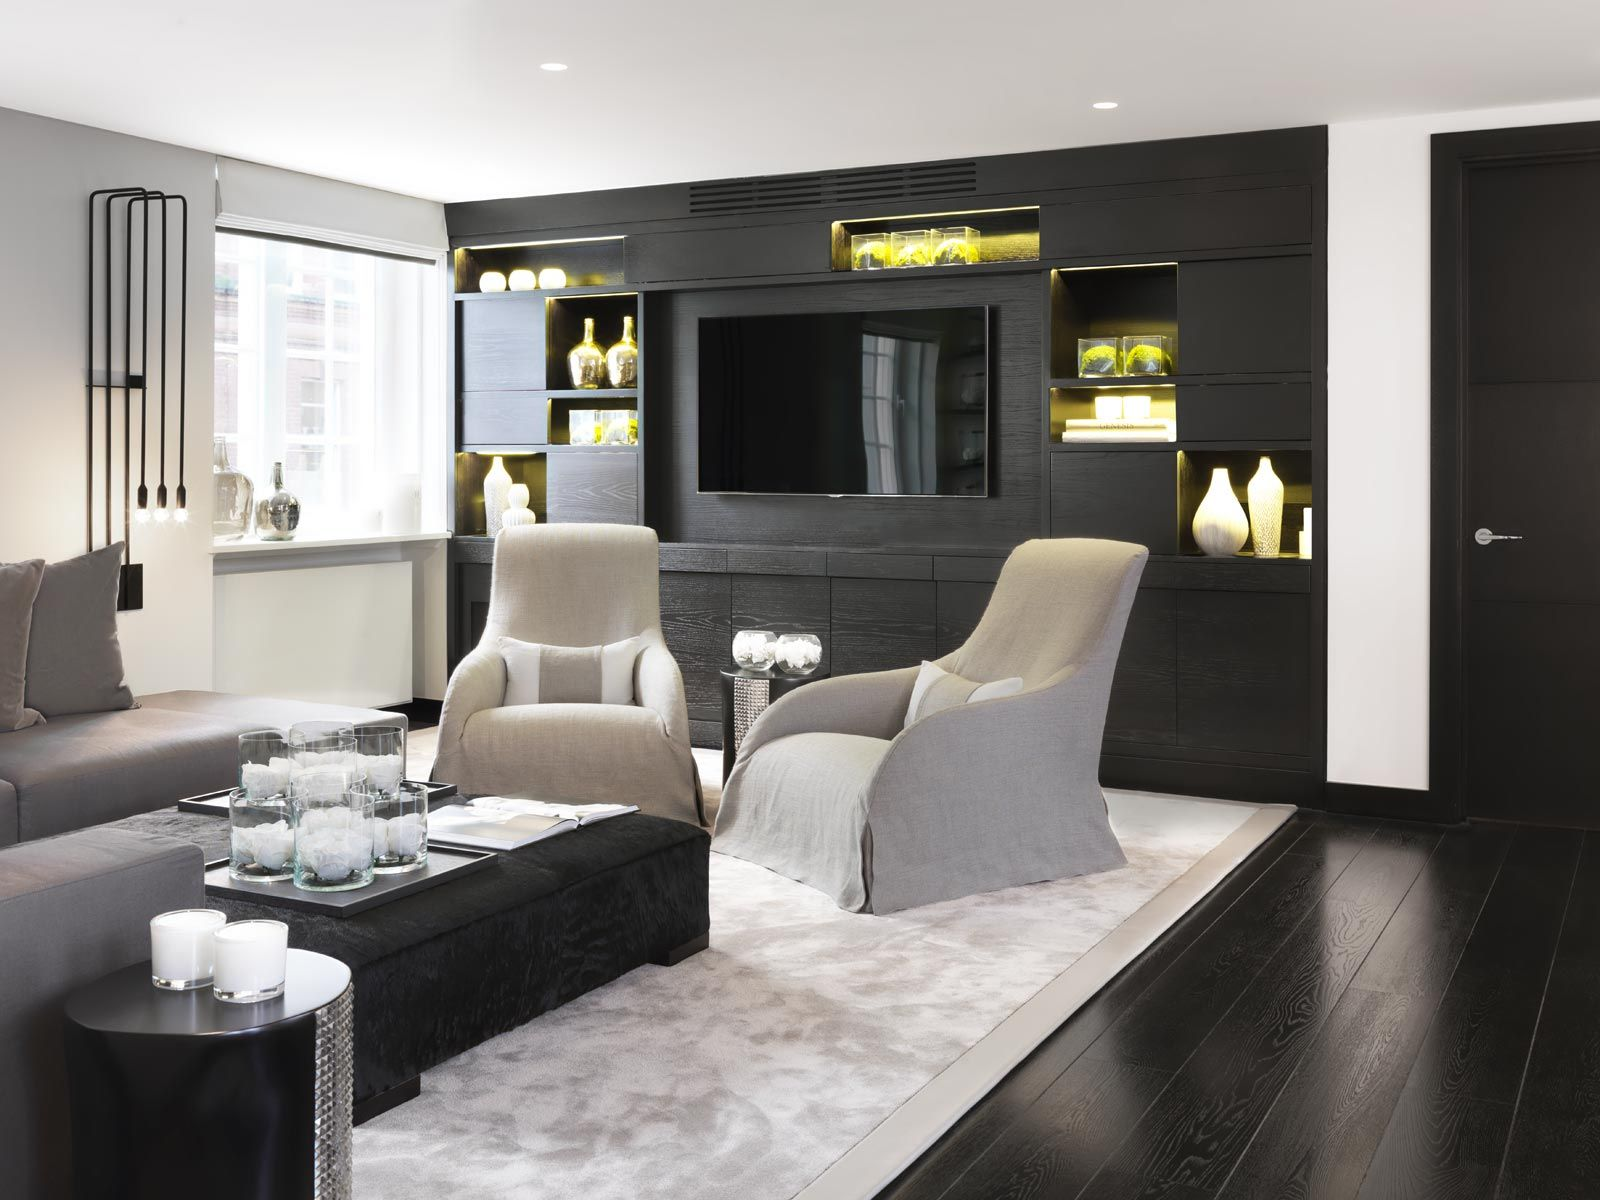 Top 10 kelly hoppen design ideas kelly hoppen - Kelly hoppen living room interiors ...